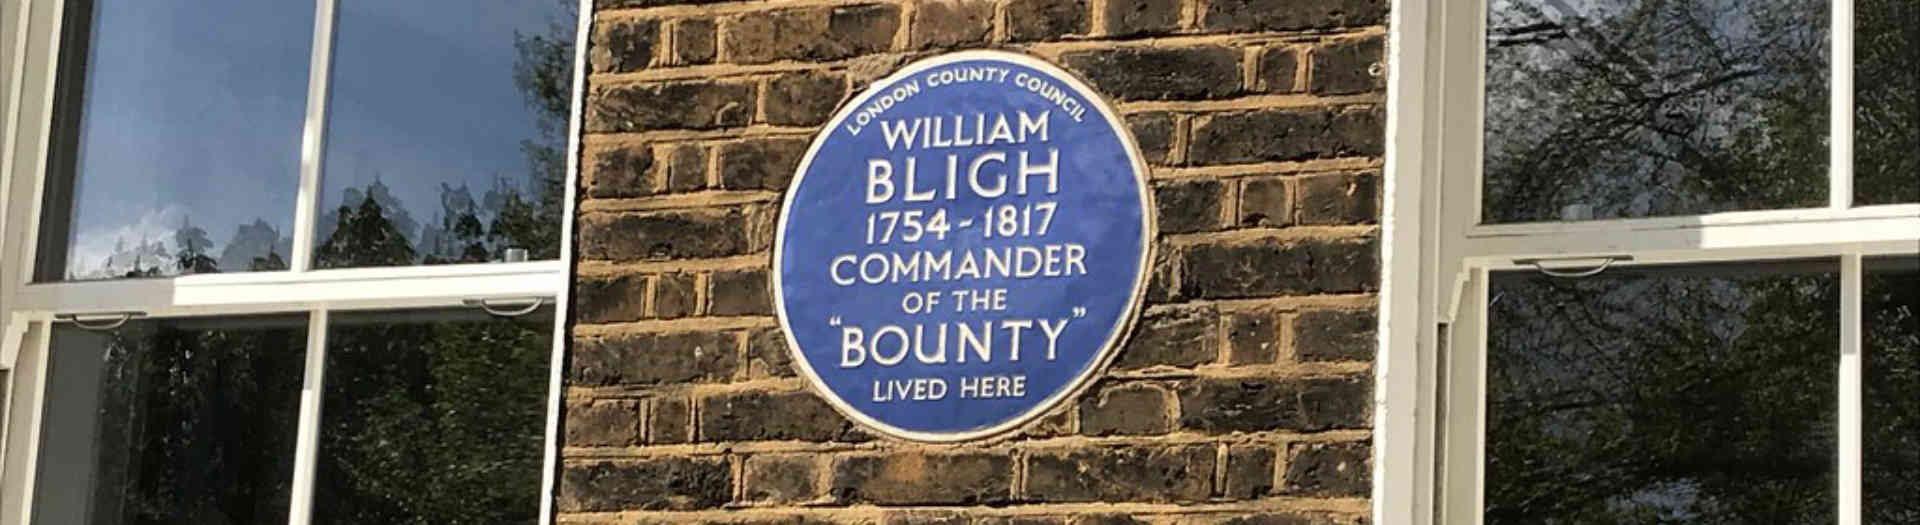 London Blue plaque of captain bligh on wall